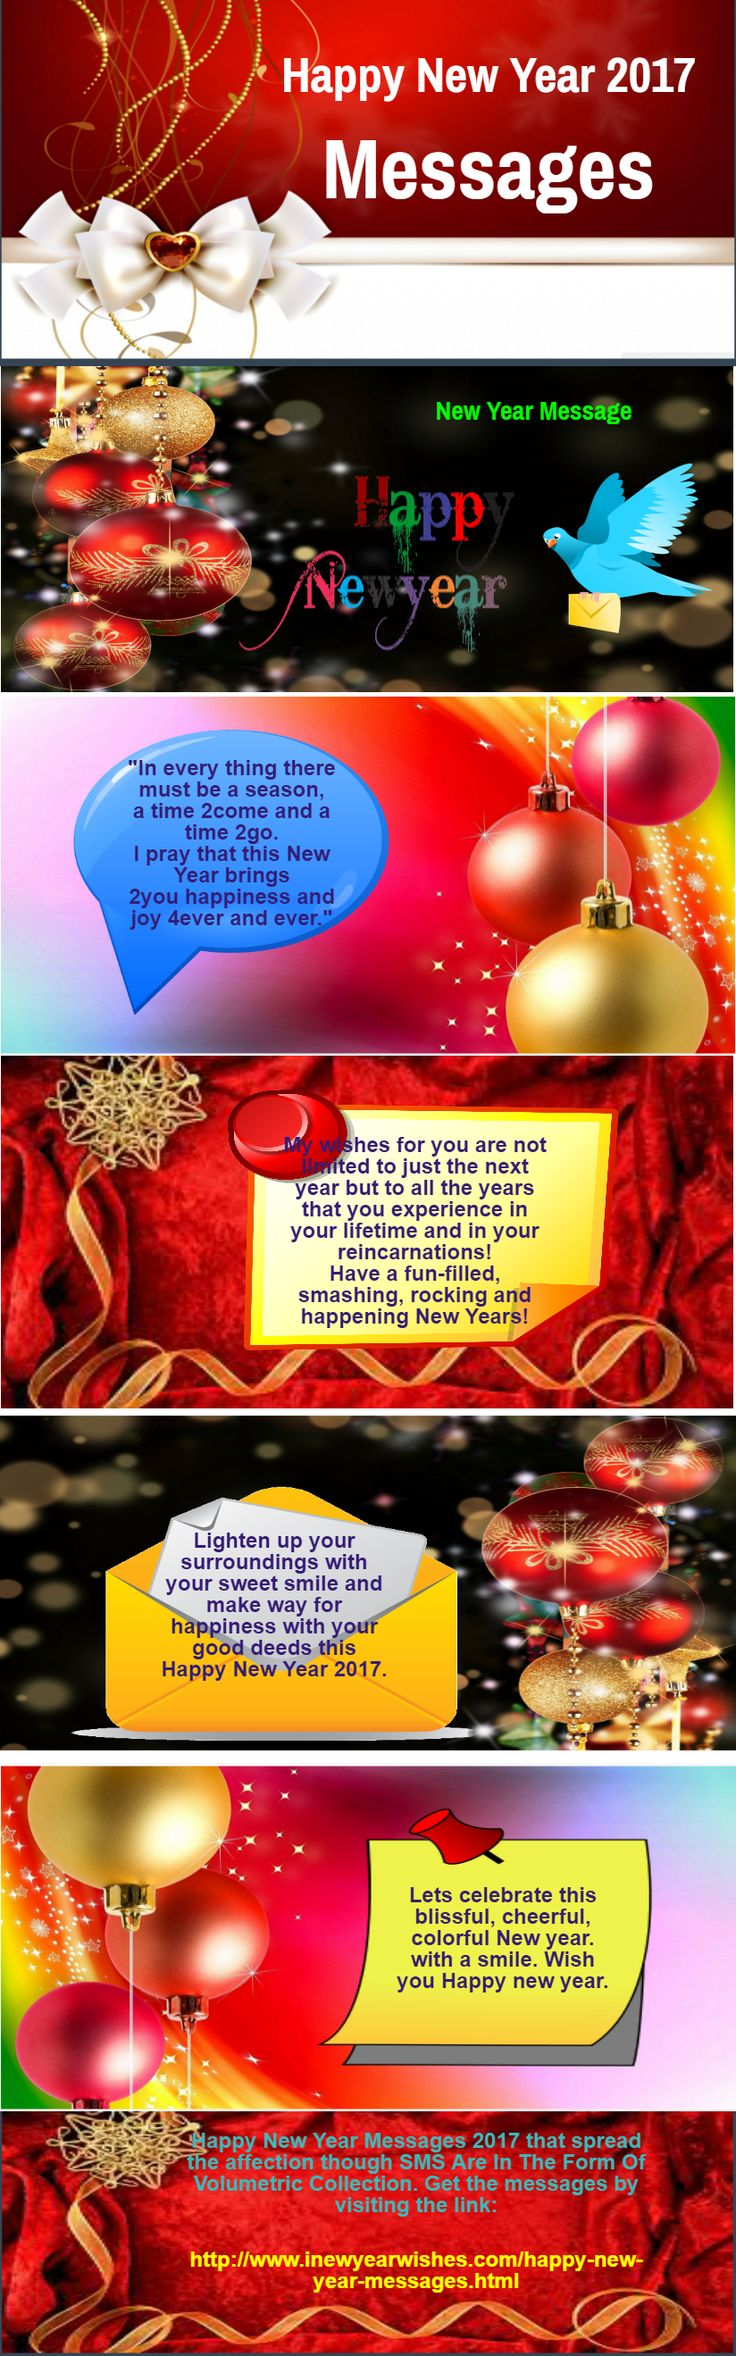 wedding anniversary wishes shayari in hindi%0A Looking for Happy New year      Messages  Check New year      SMS  collection and find new year SMS for the Happy New Year New year messages       sms to wish